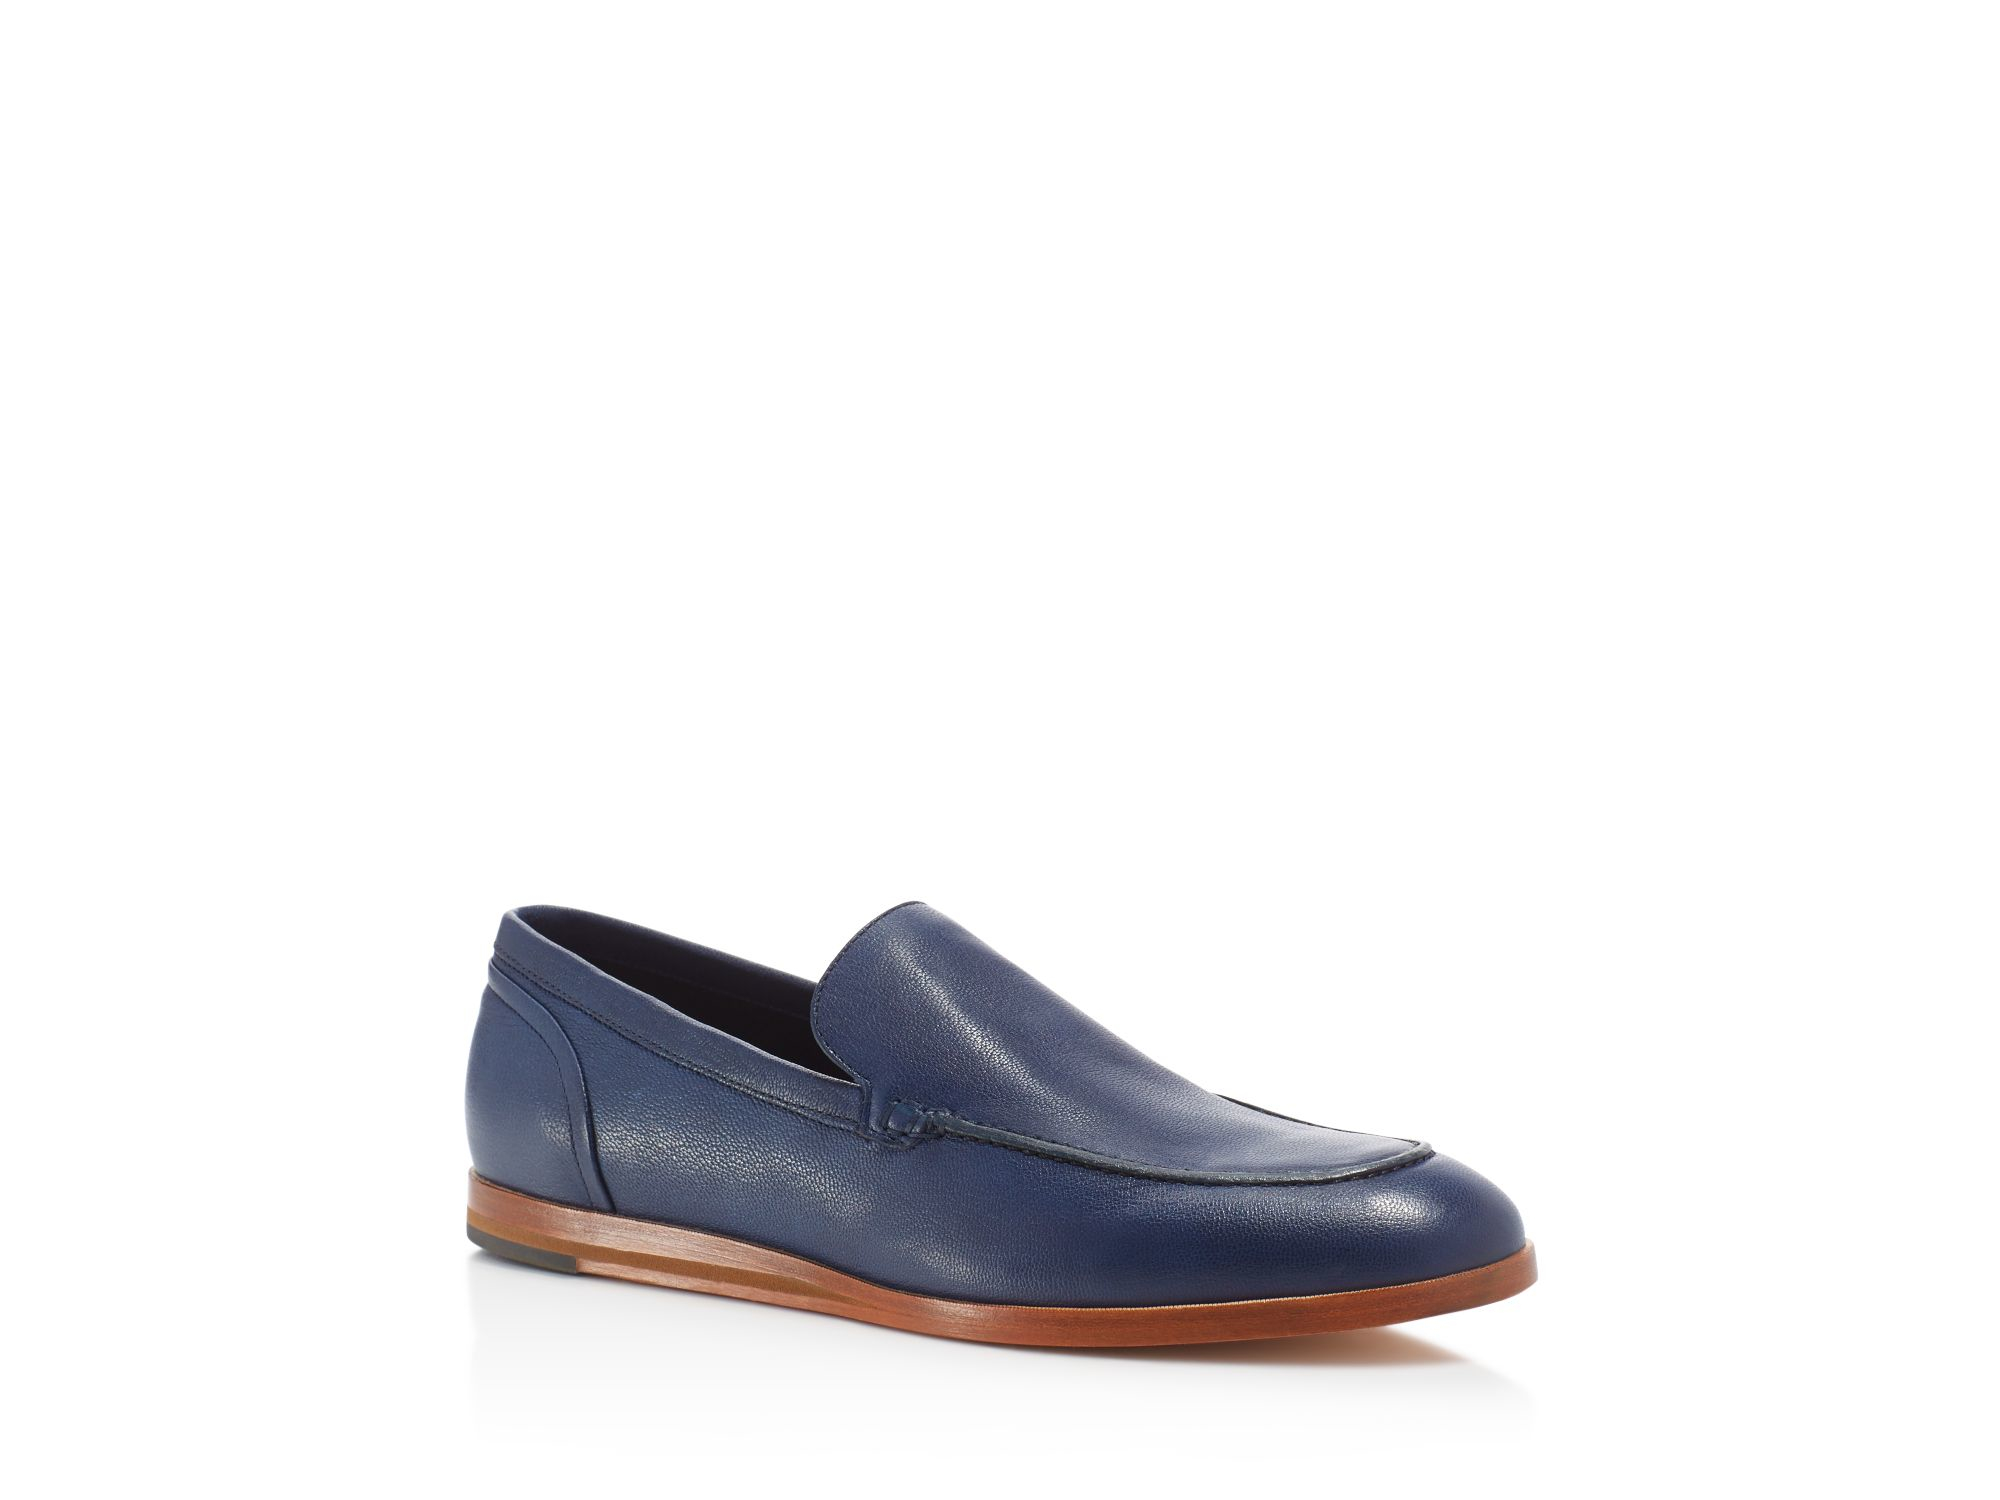 79155529af6 Lyst - Cole Haan Bedford Venetian Loafers - Compare At  228 in Blue ...